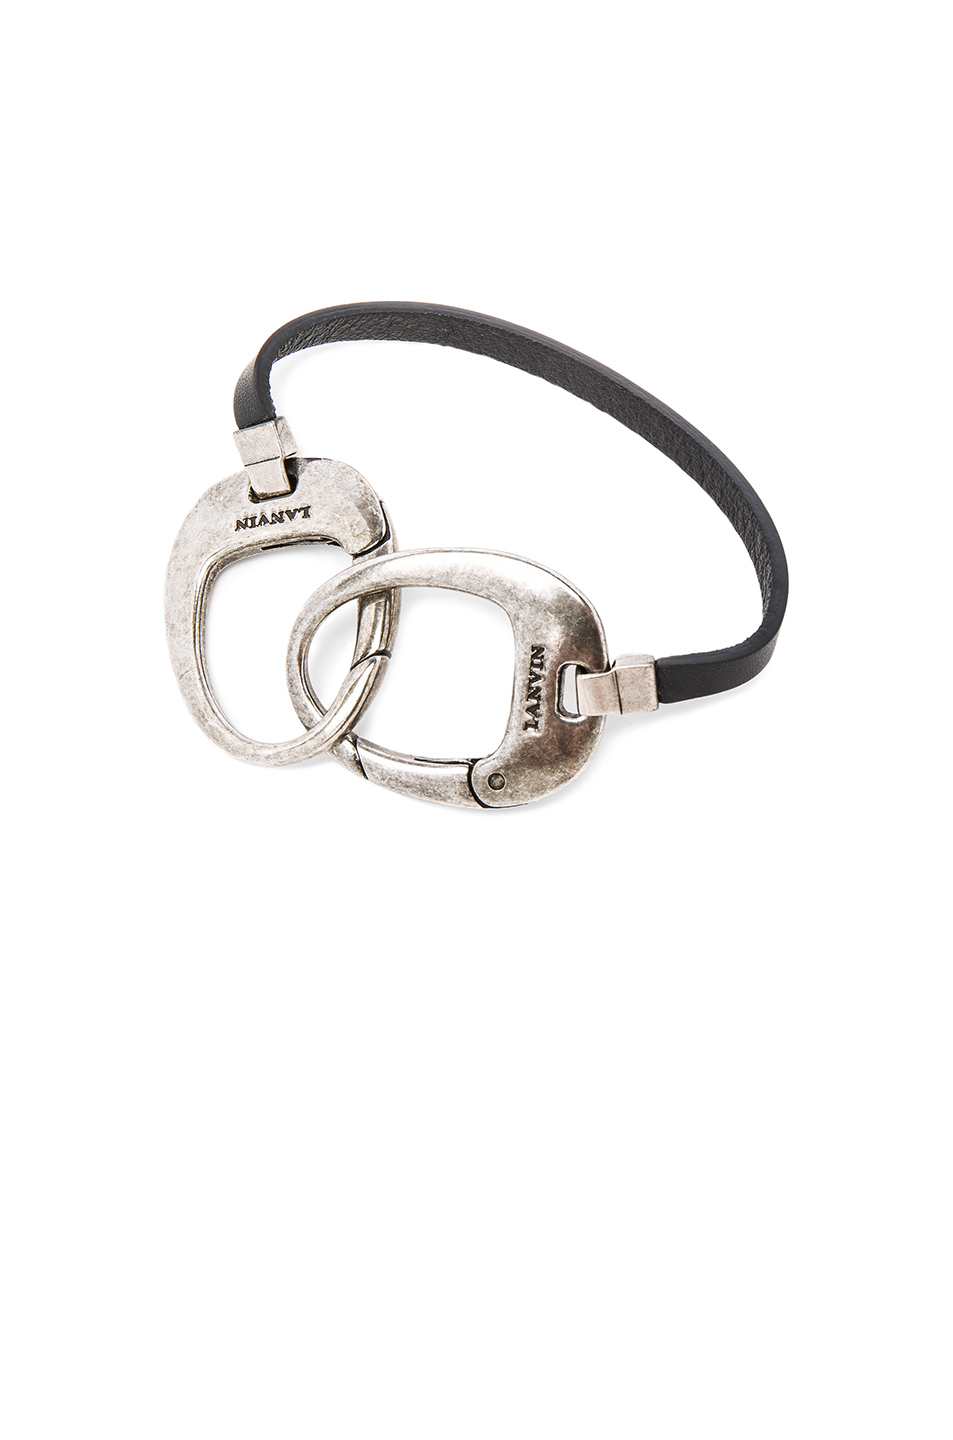 Lanvin Bracelet in Black,Metallics